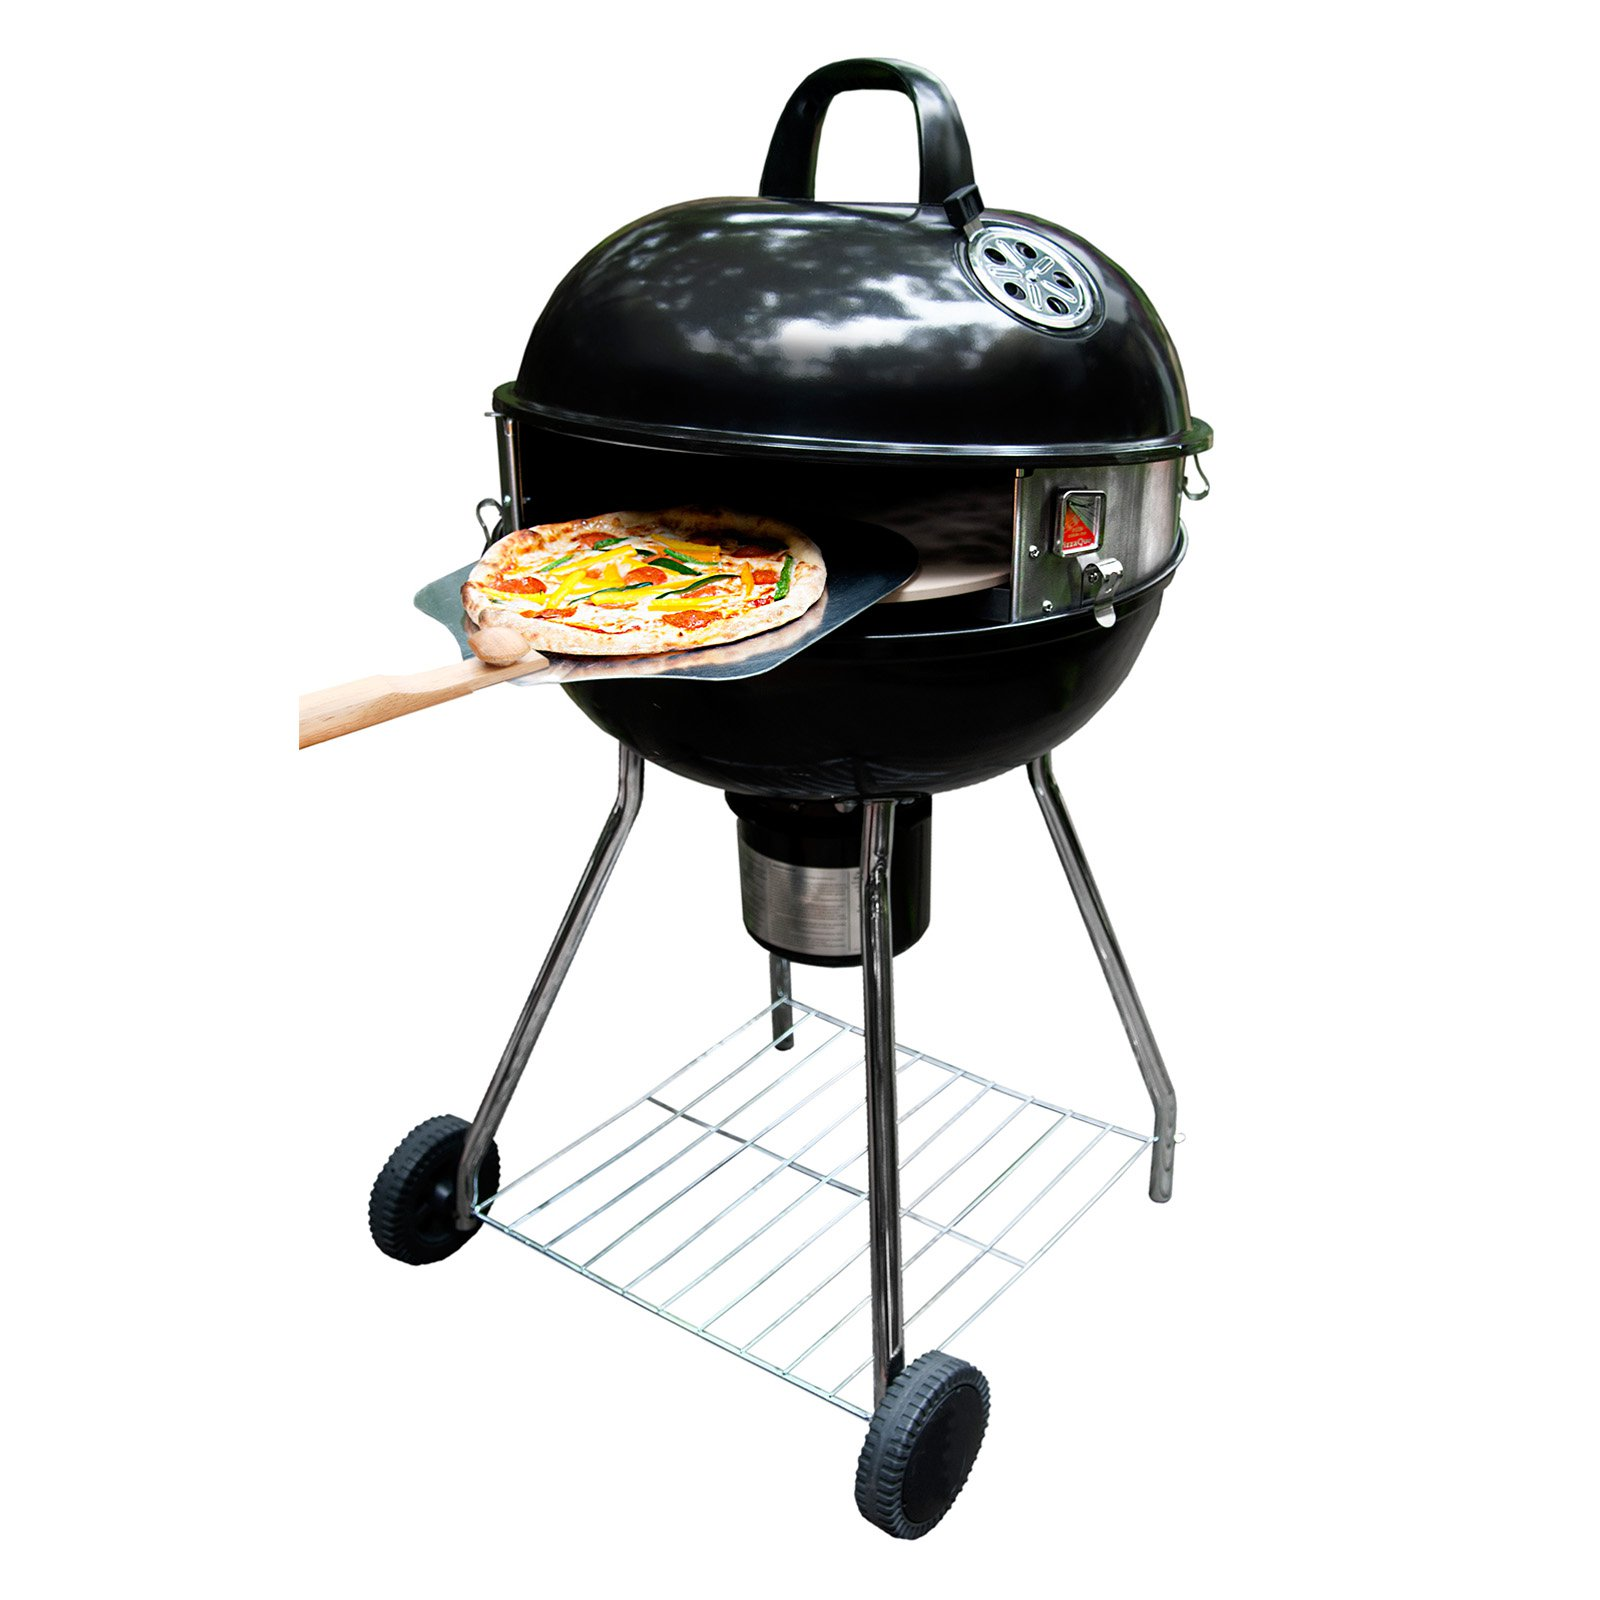 "Pizzacraft PizzaQue Deluxe Kettle Grill Pizza Oven Conversion Kit for 18"" and 22.5"" Kettle Grills, turn your BBQ into a Pizza oven! PC7001"